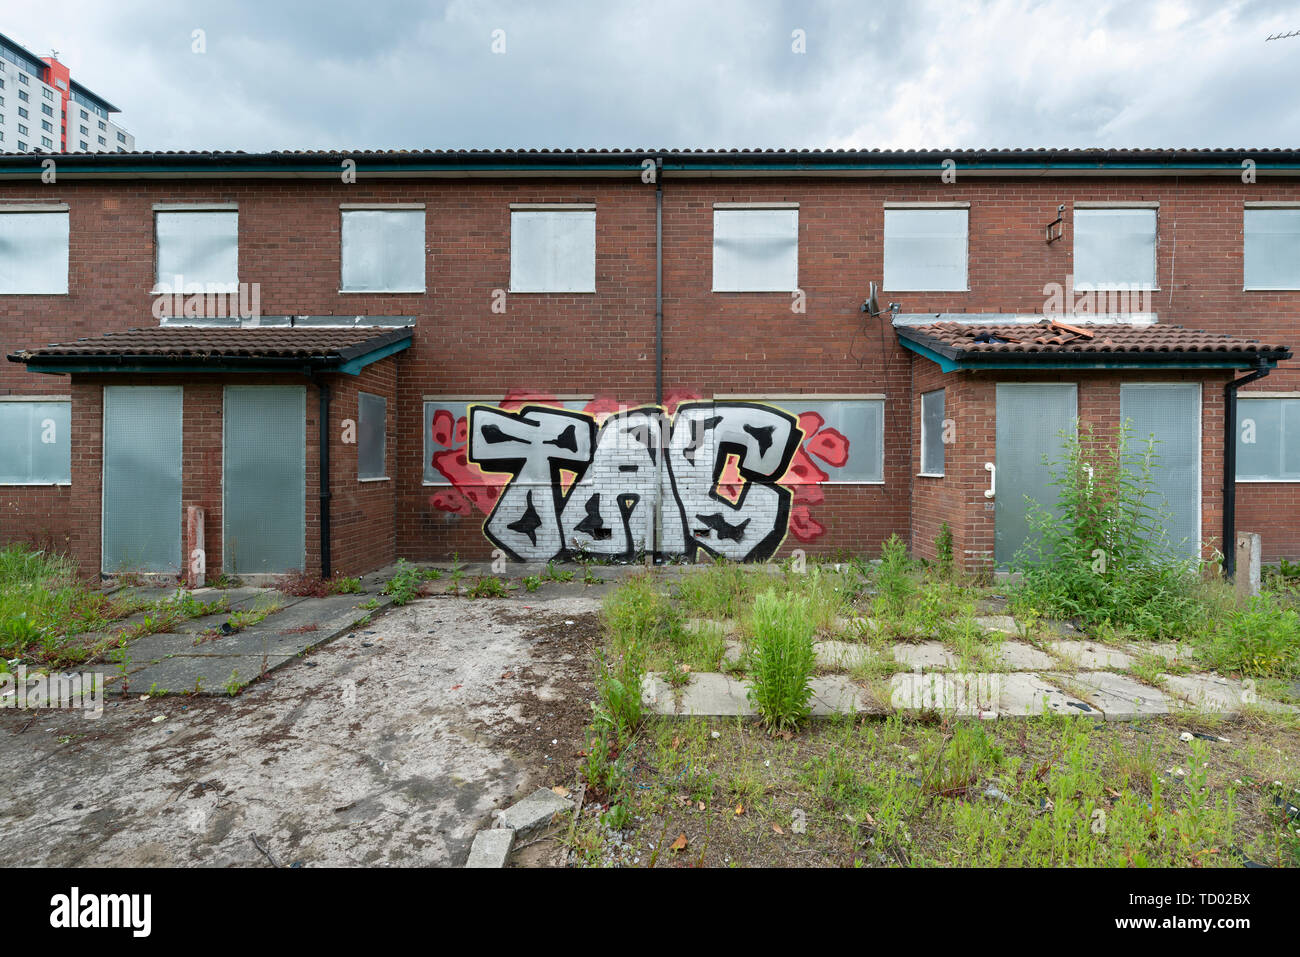 Boarded up houses on the High Street Estate area of Pendleton in Salford, which are awaiting demolition. Stock Photo